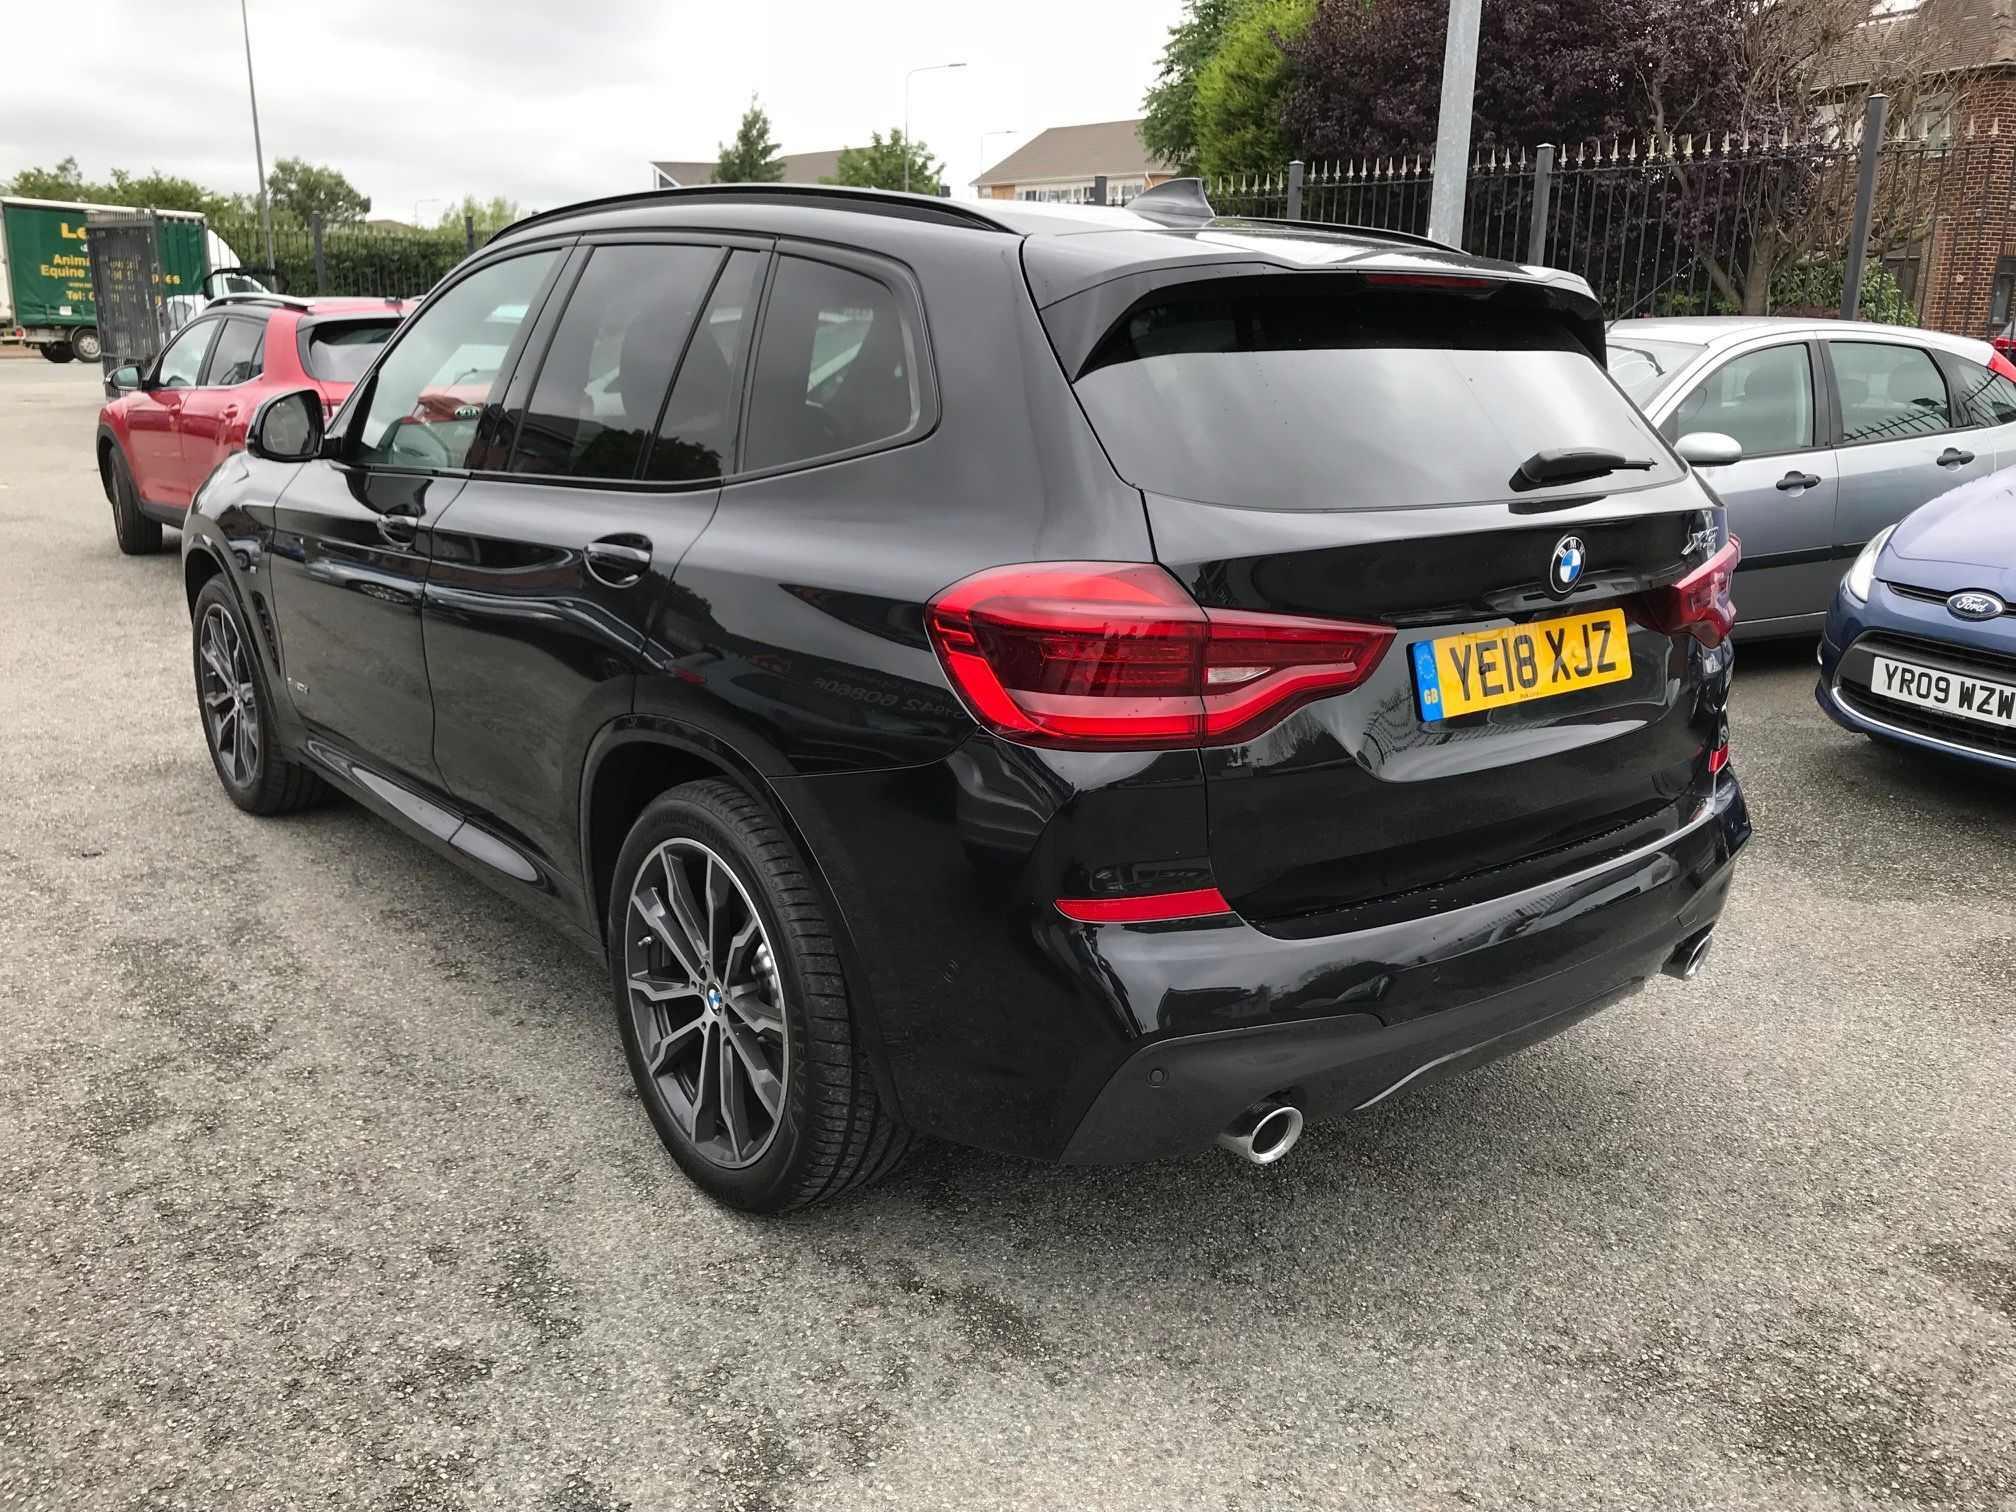 The BMW X3 DIESEL ESTATE xDrive20d M Sport 5dr Step Auto